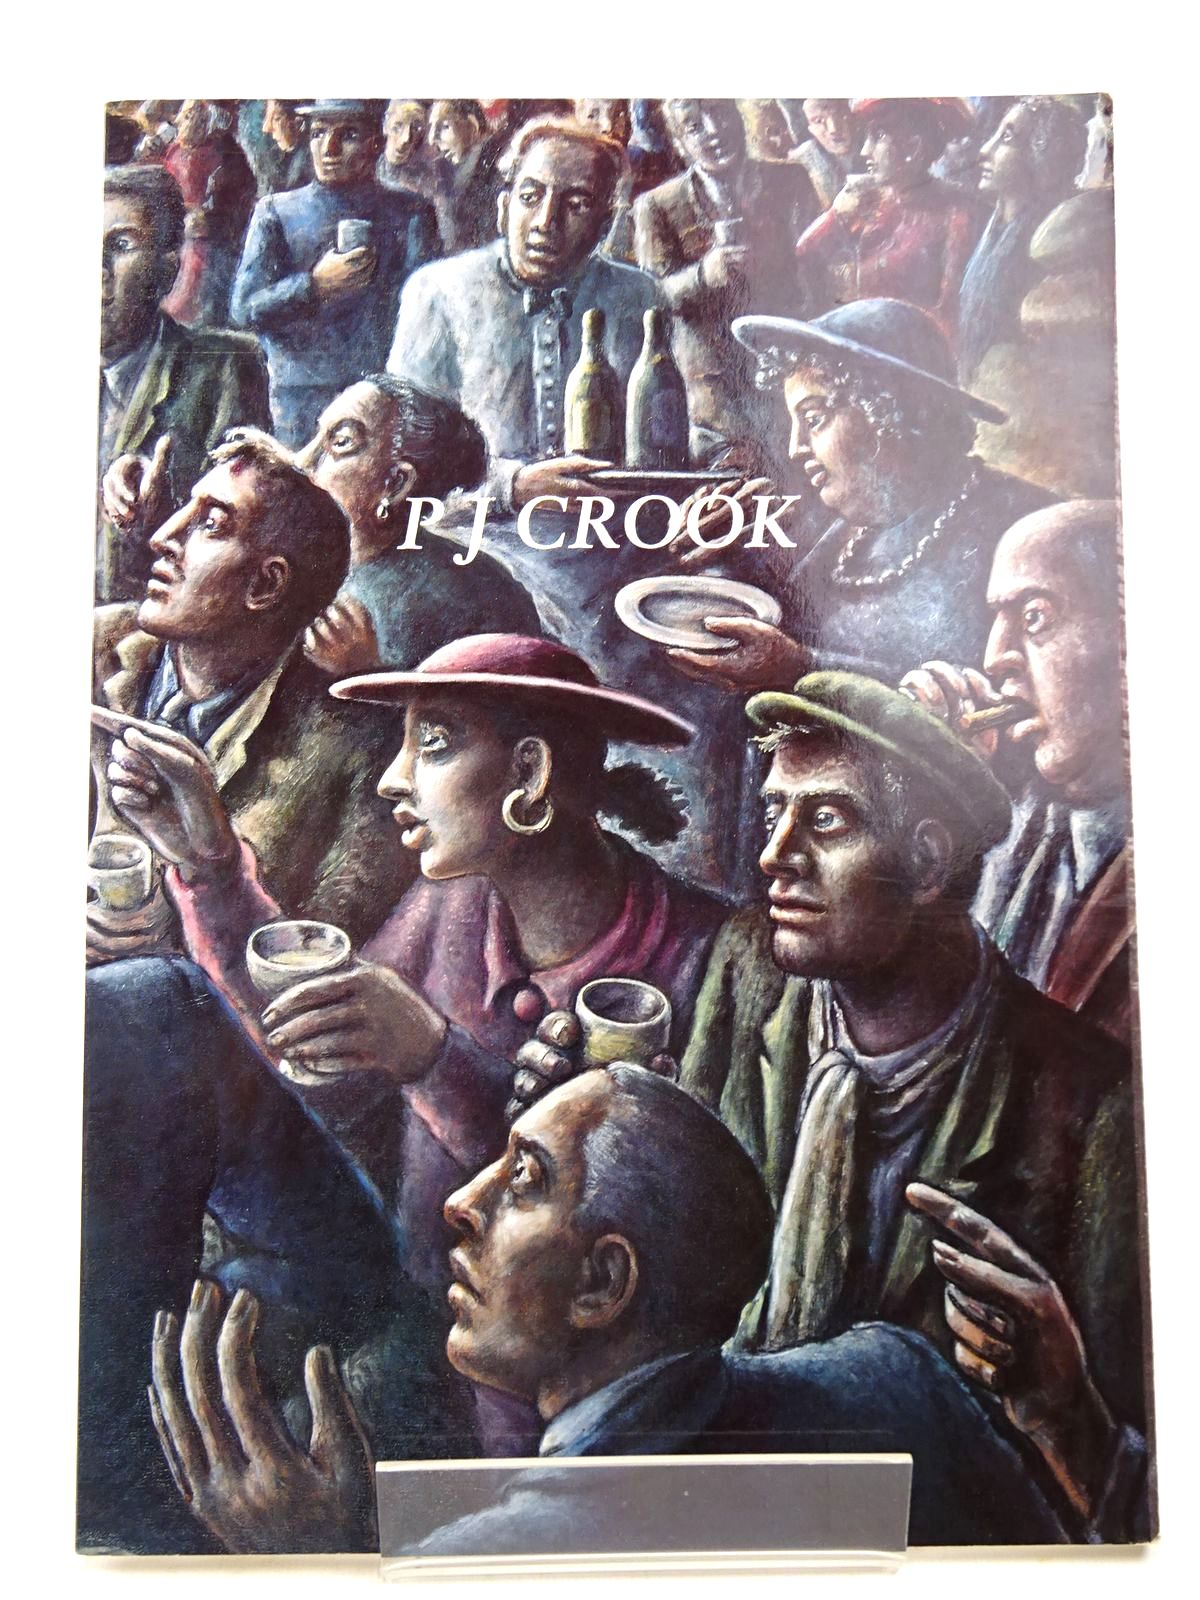 Photo of P J CROOK illustrated by Crook, Pamela J. published by Cheltenham Art Gallery & Museums (STOCK CODE: 1817691)  for sale by Stella & Rose's Books